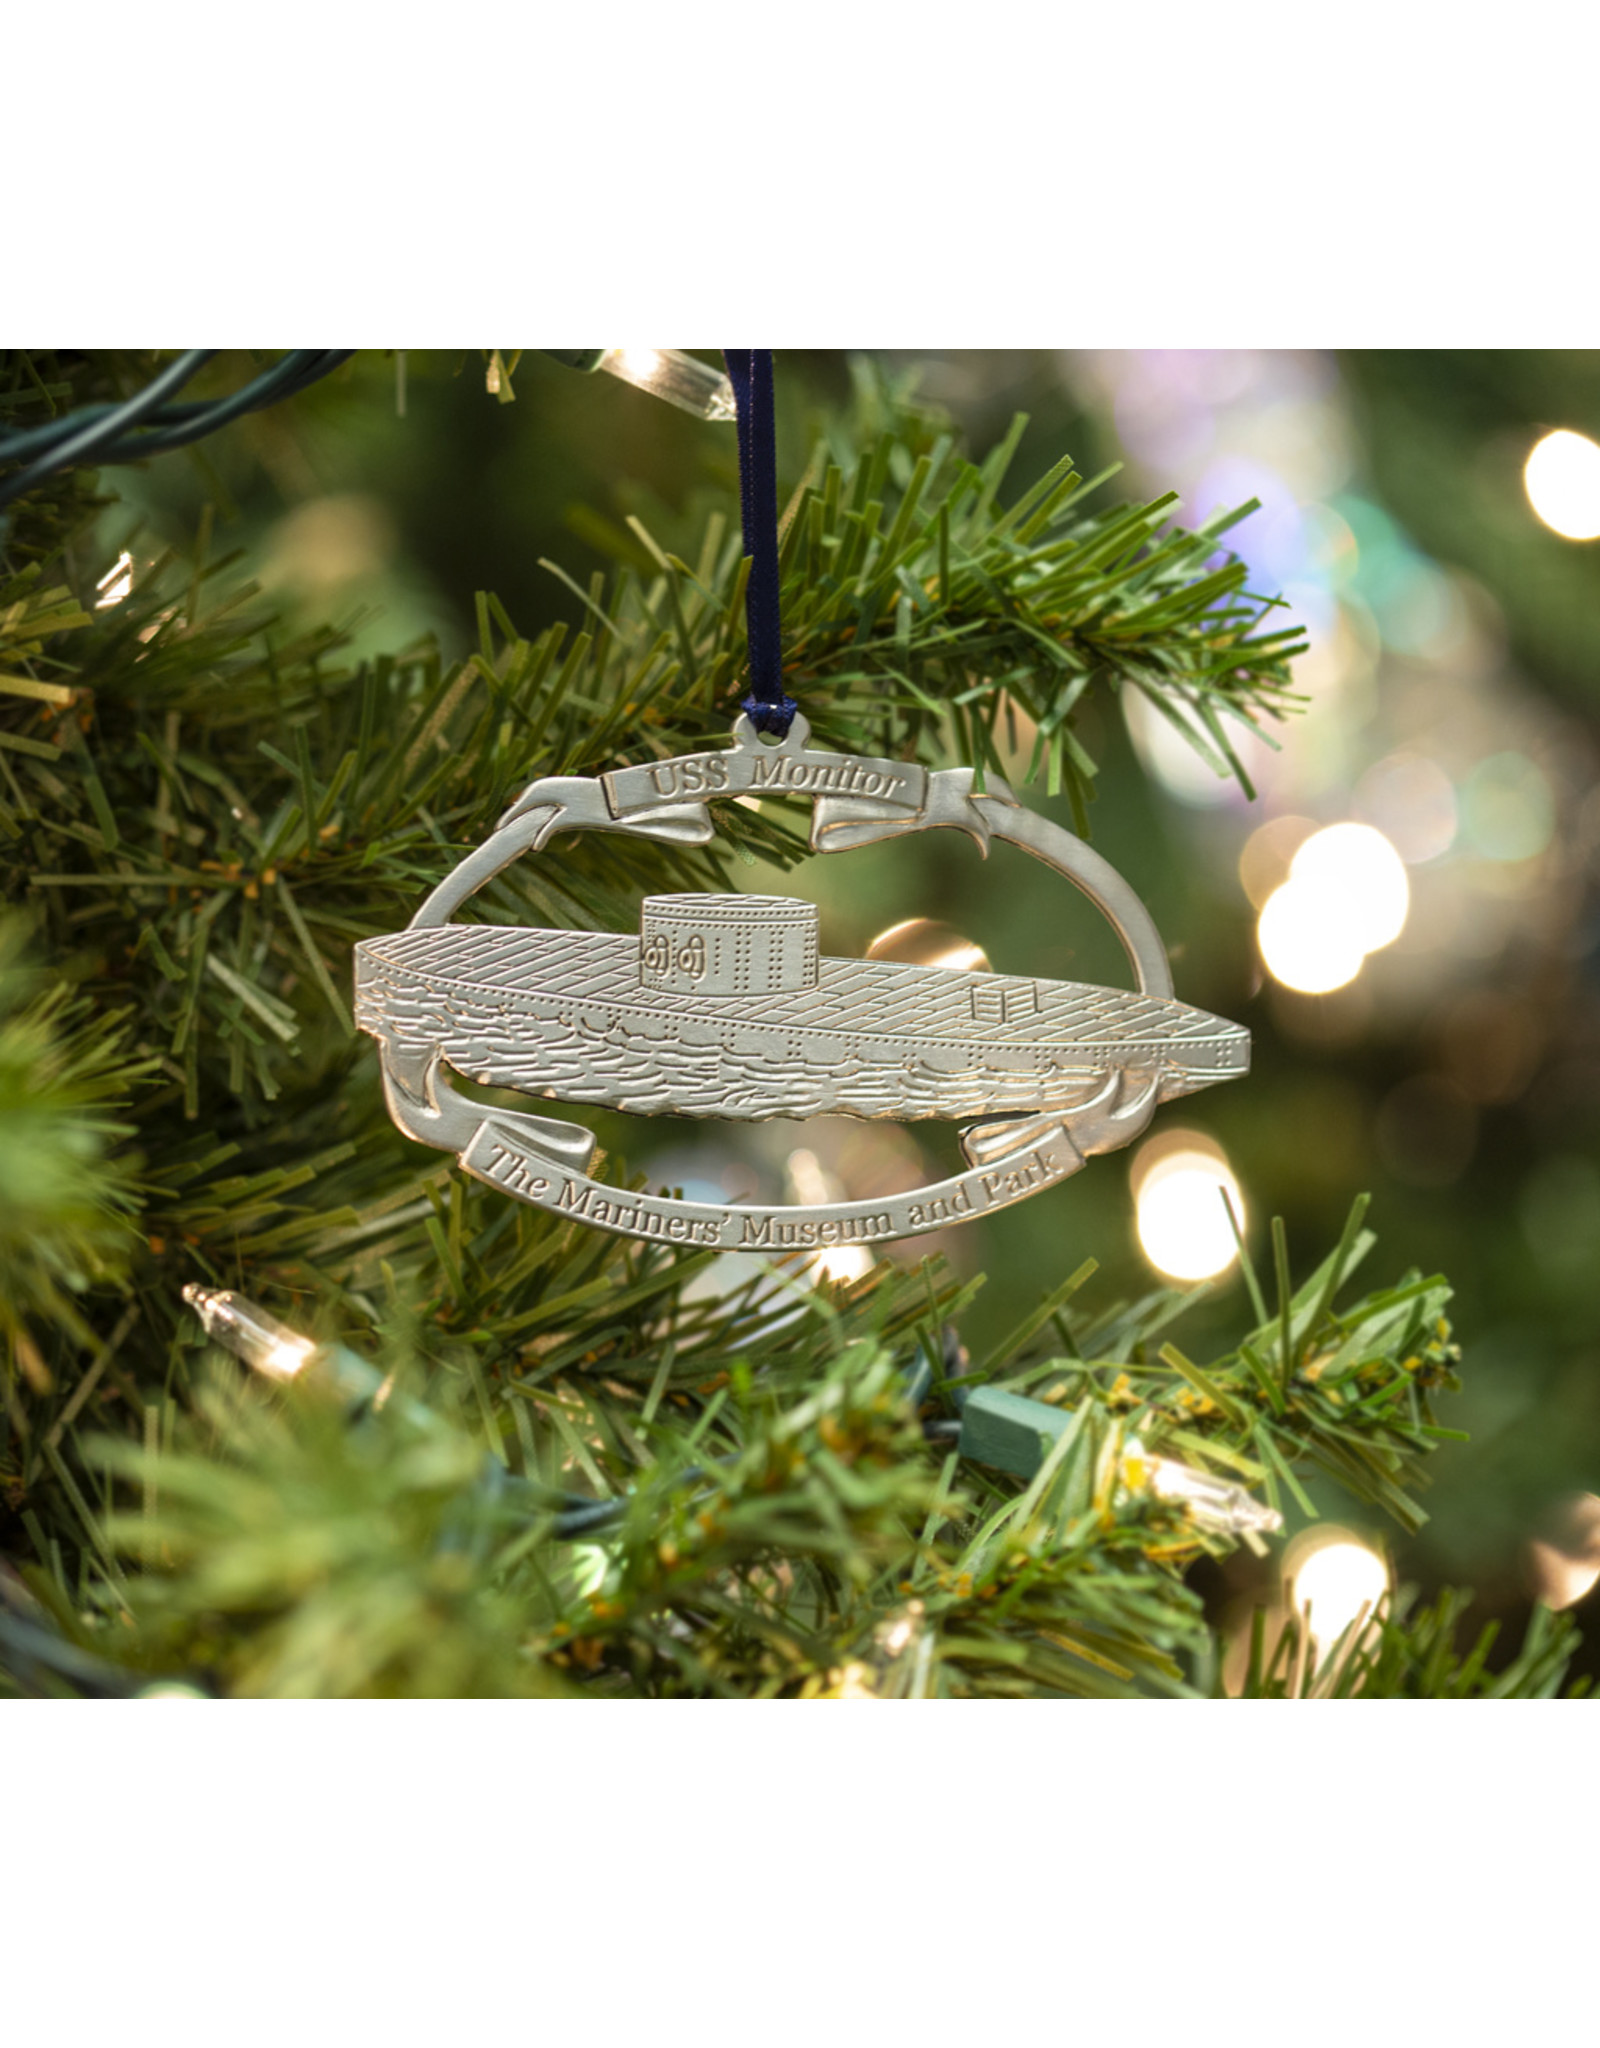 USS Monitor Pewter Ornament 2019